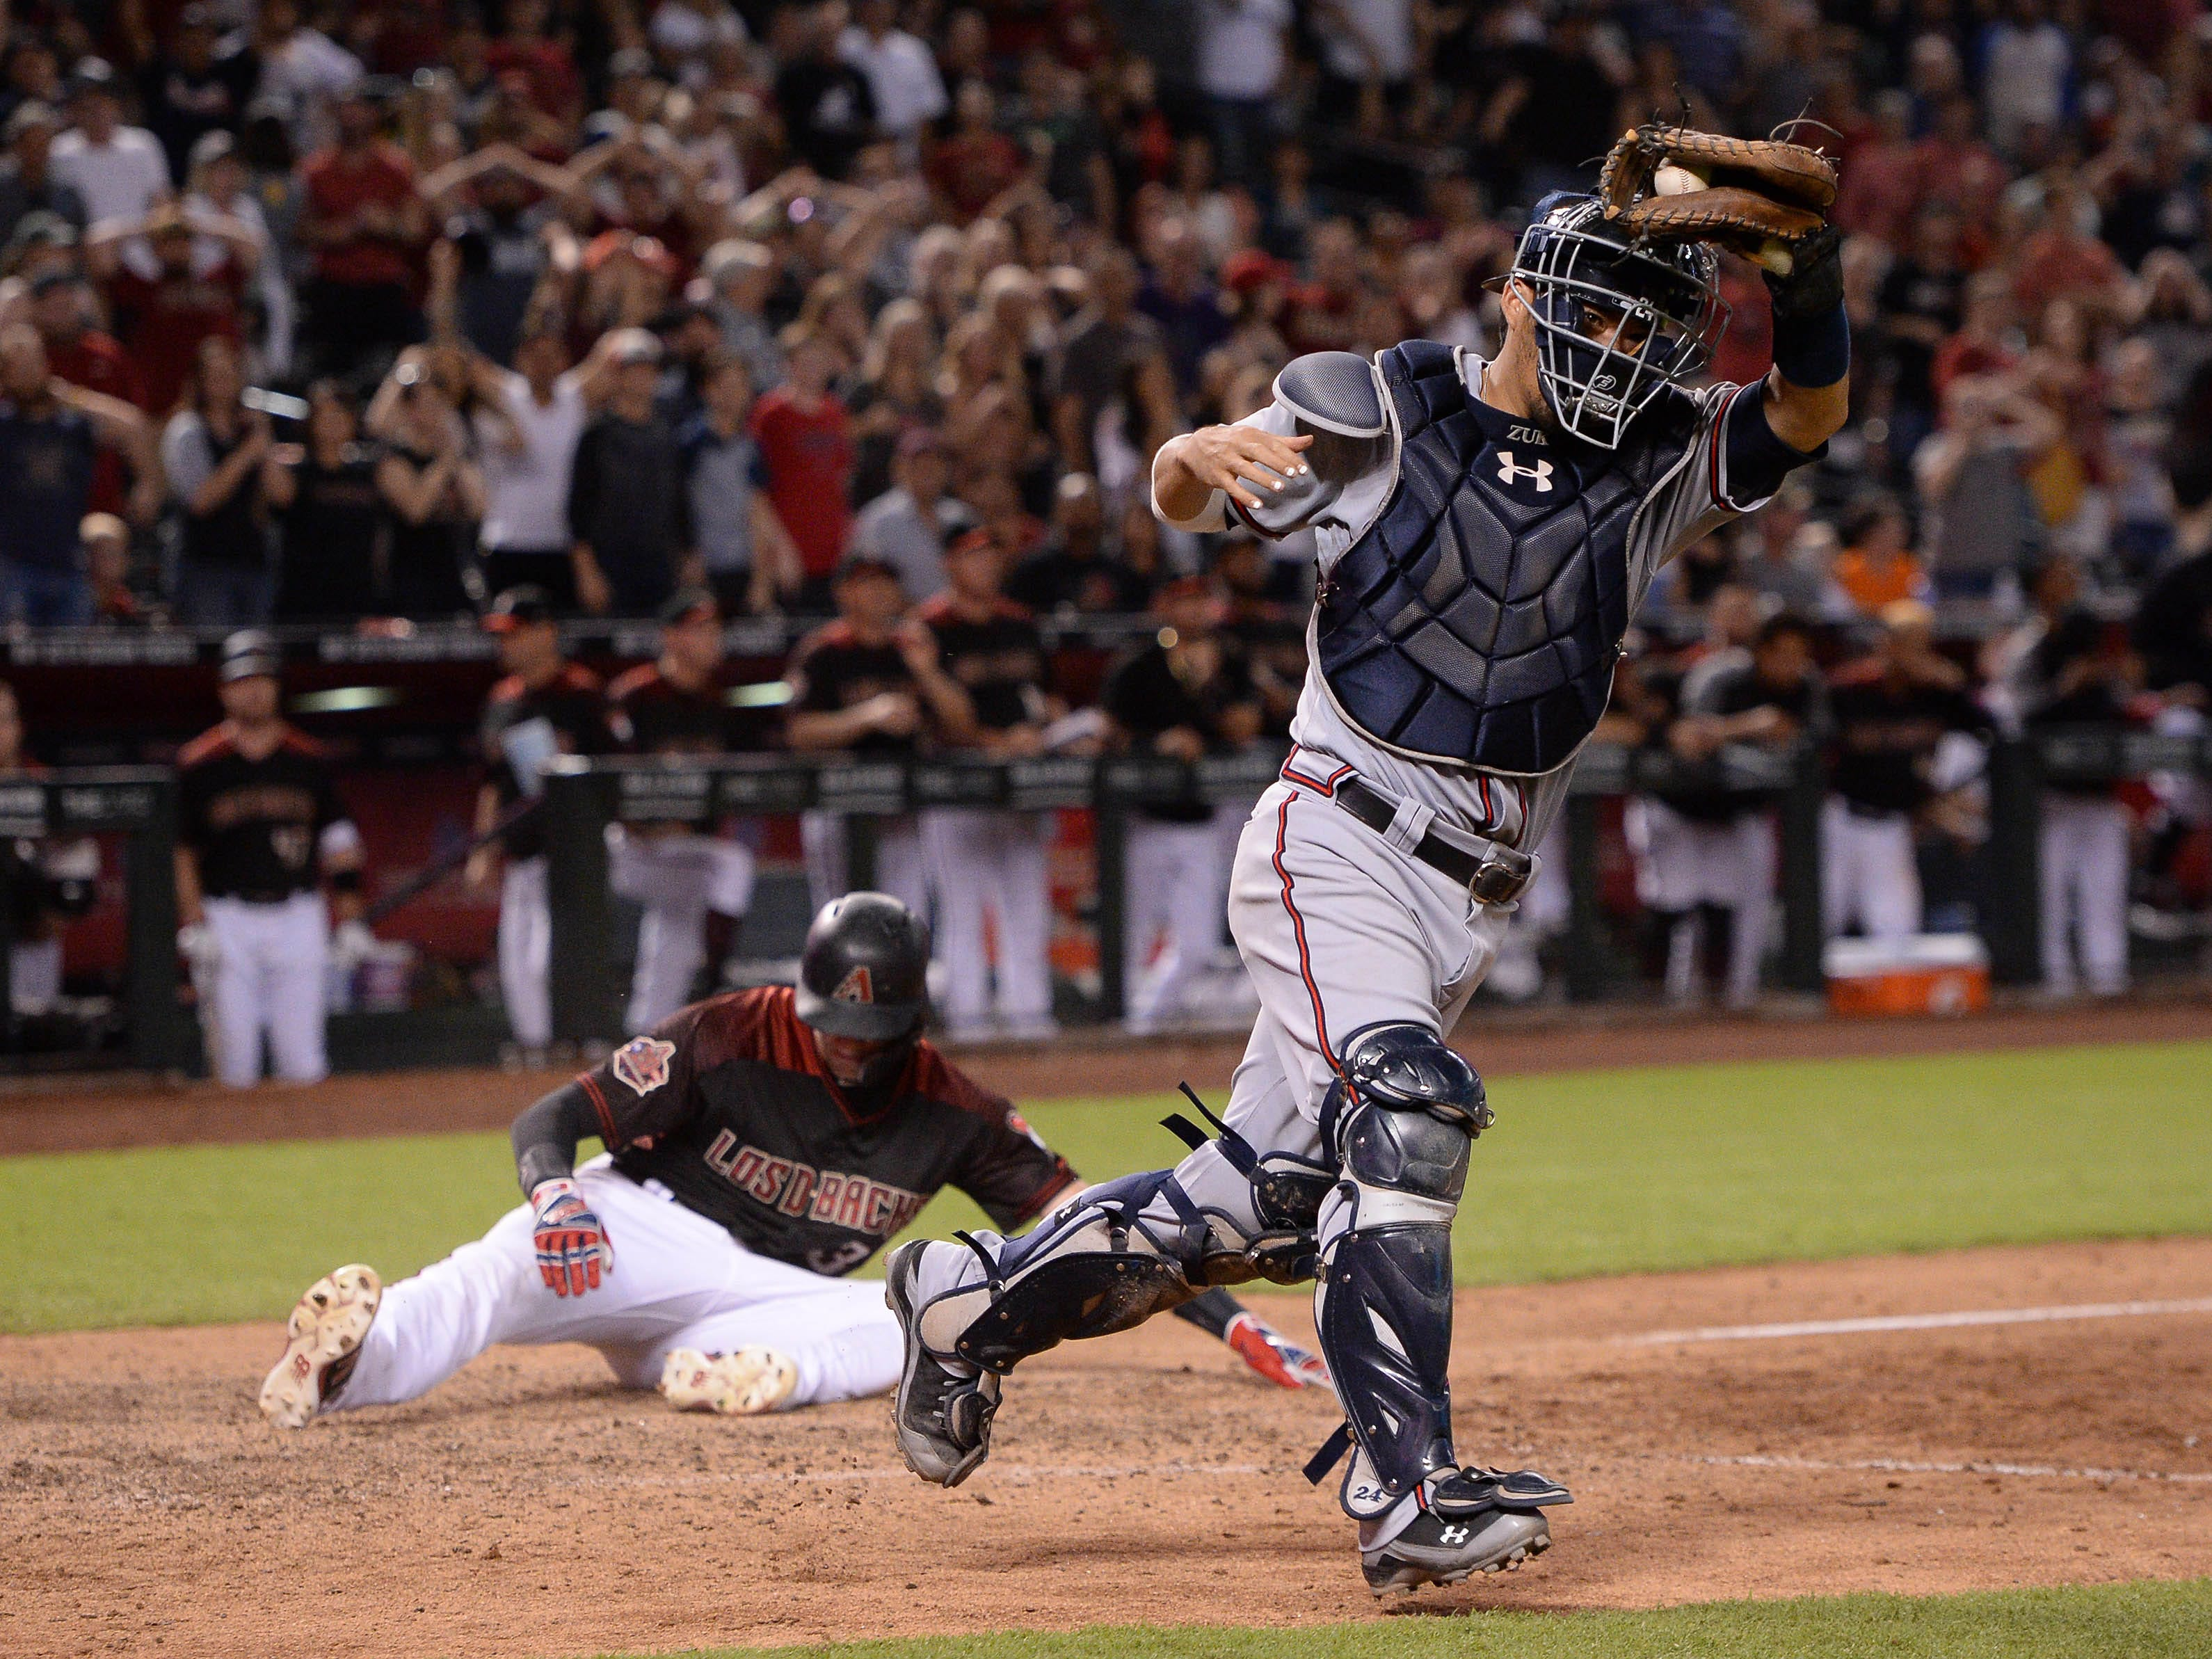 Sep 8, 2018; Phoenix, AZ, USA; Atlanta Braves catcher Kurt Suzuki (right) reacts after tagging out Arizona Diamondbacks shortstop Nick Ahmed (rear) at home to end the game at Chase Field. The Braves won 5-4. Mandatory Credit: Orlando Ramirez-USA TODAY Sports